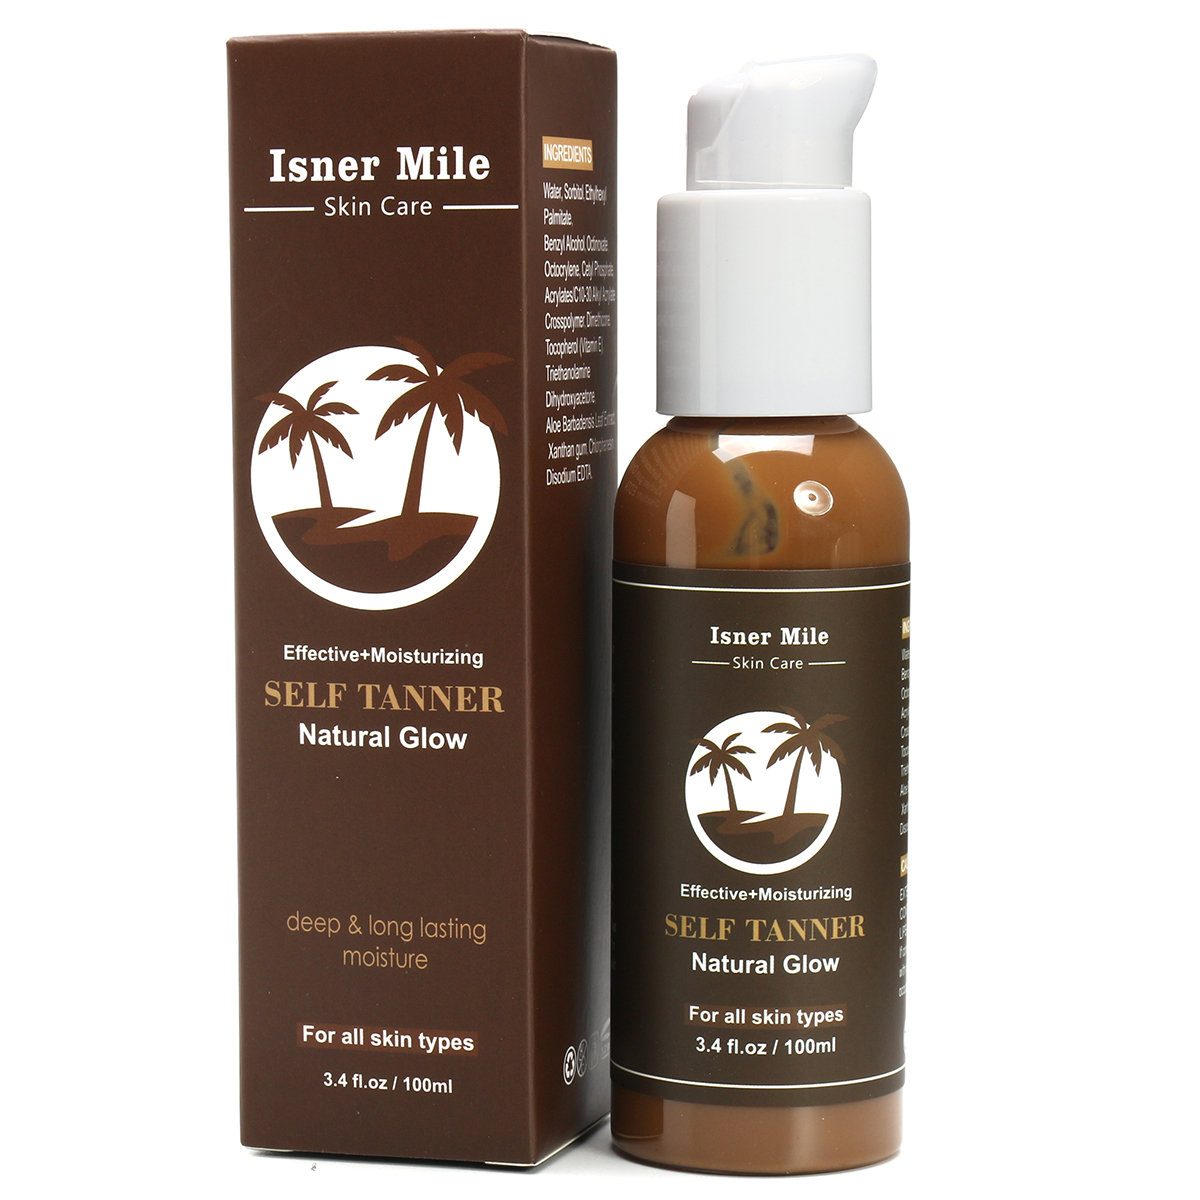 100 ml Self Tanning Cream Natural Bronze Skin Sunscreen Lotion Moisturizing Lasting Tanning Cream